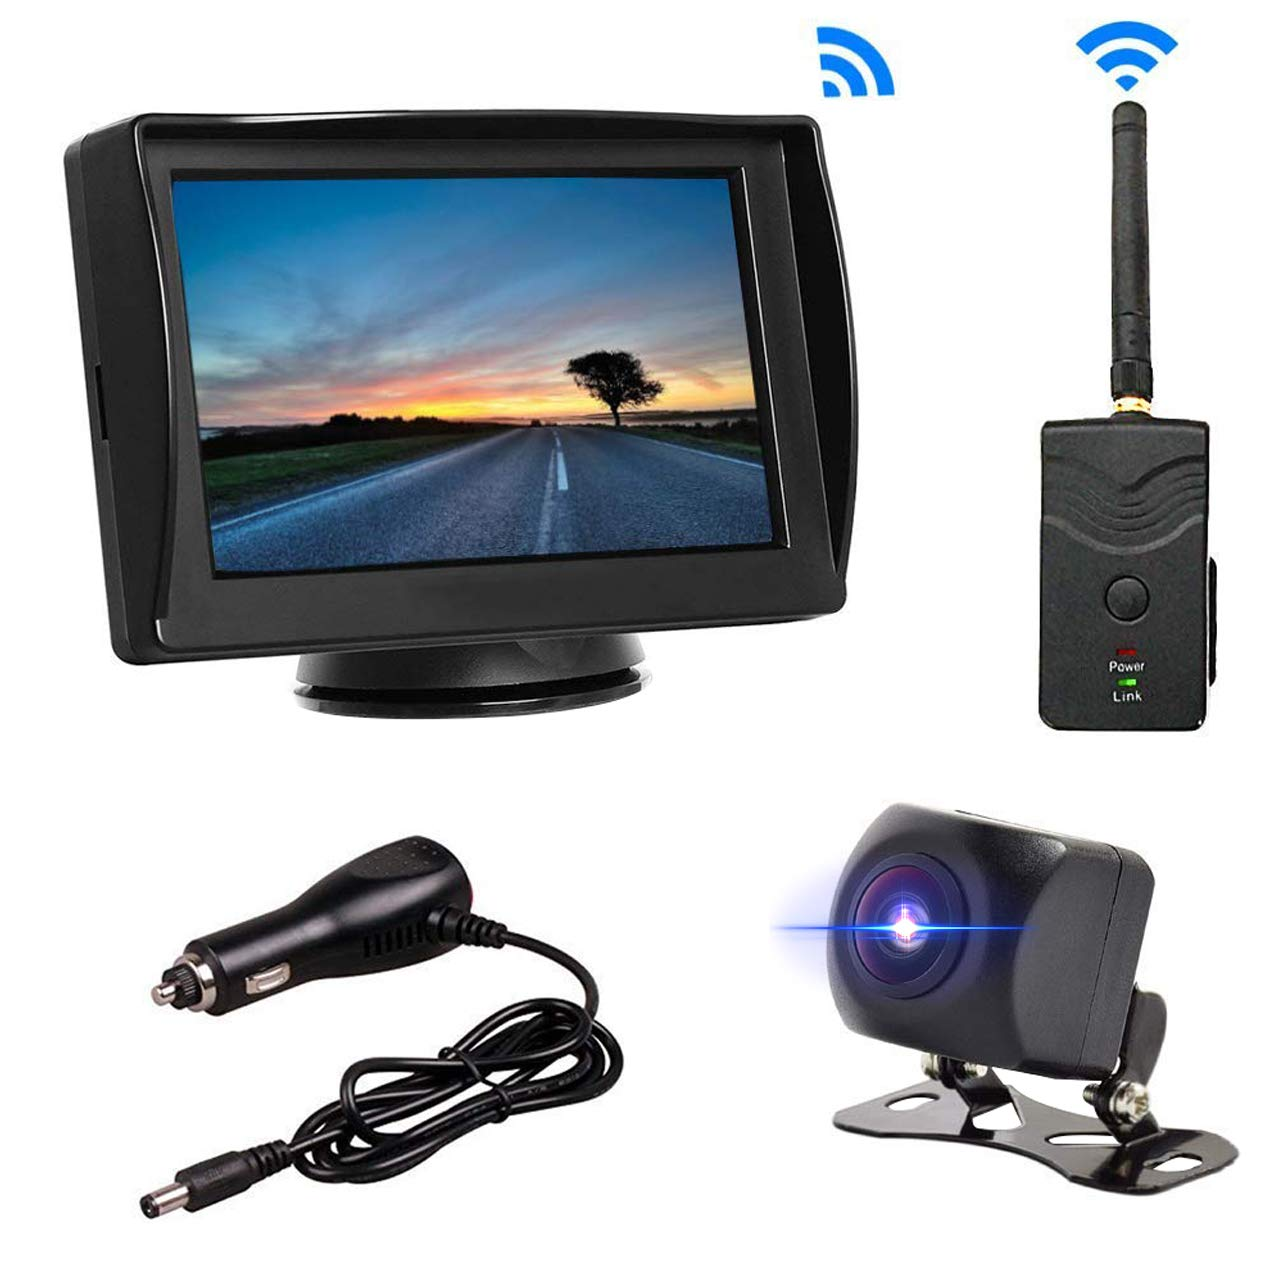 B-Qtech Digital Wireless Backup Camera – Mini Rear View Starlight Camera and 4.3 Monitor for Truck Camper Trailer Bus Van Removable Guild Line Mirror Normal Image No Interference